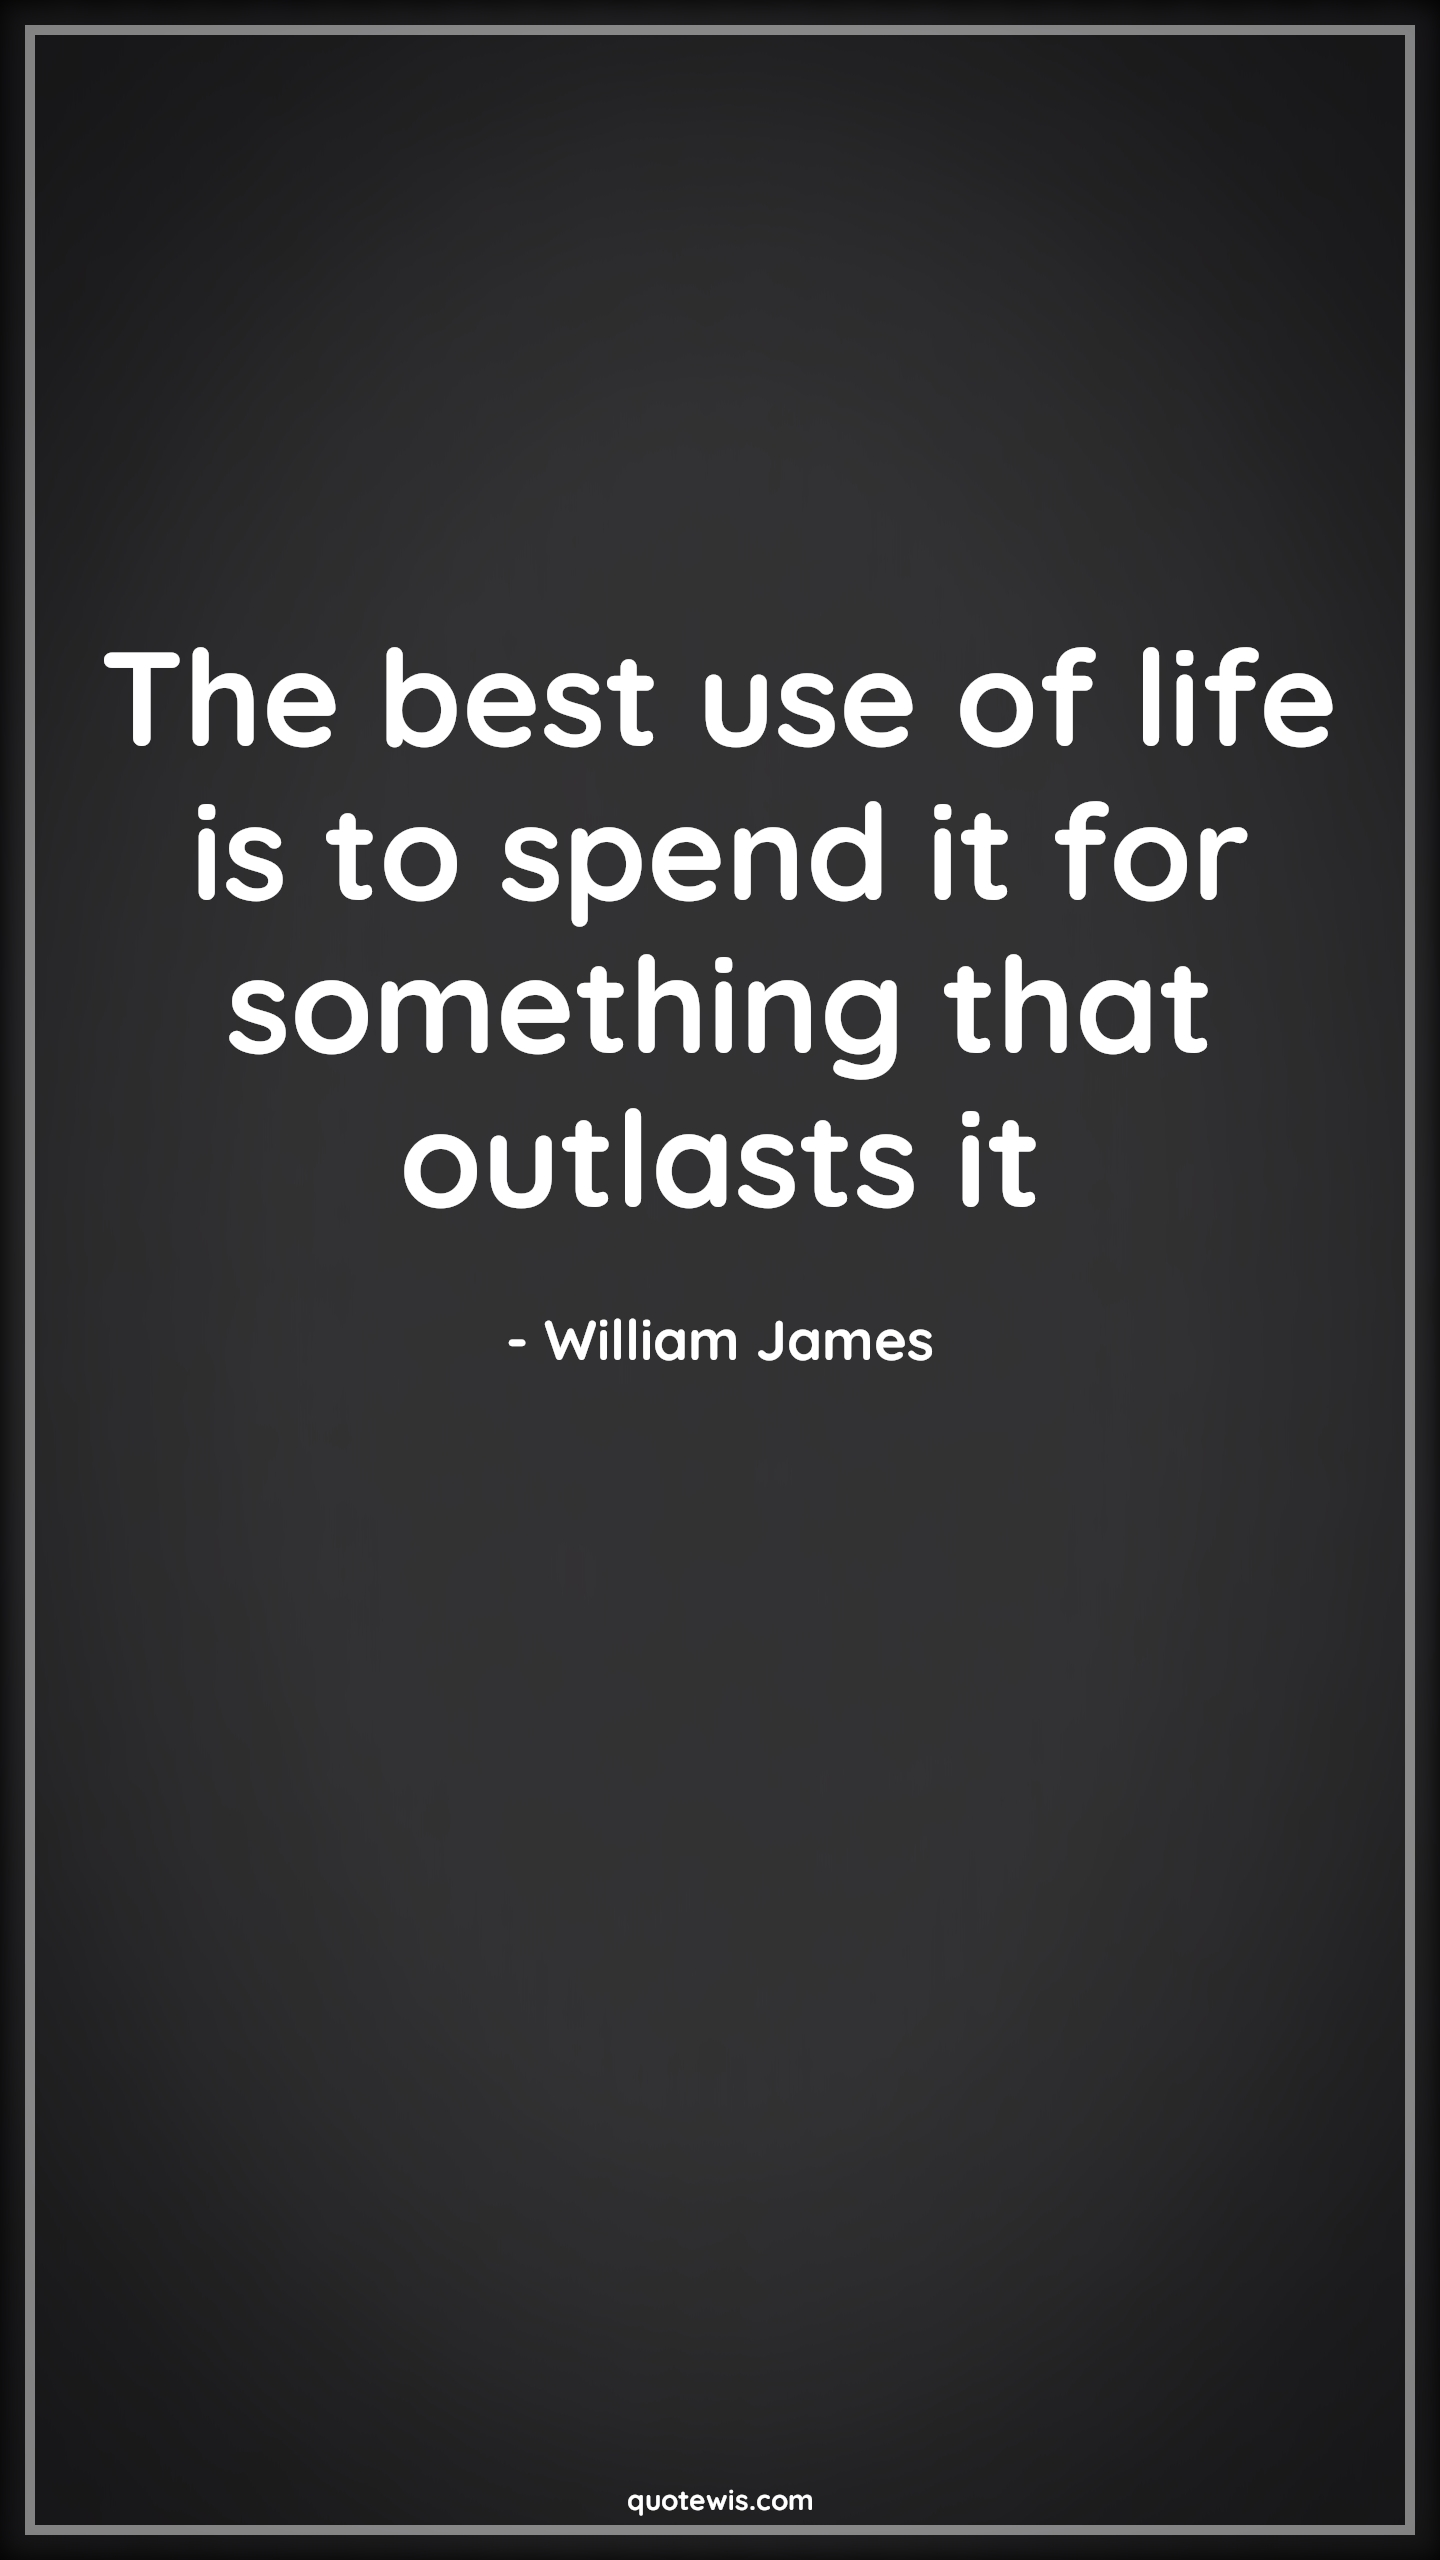 The best use of life is to spend it for something that outlasts it